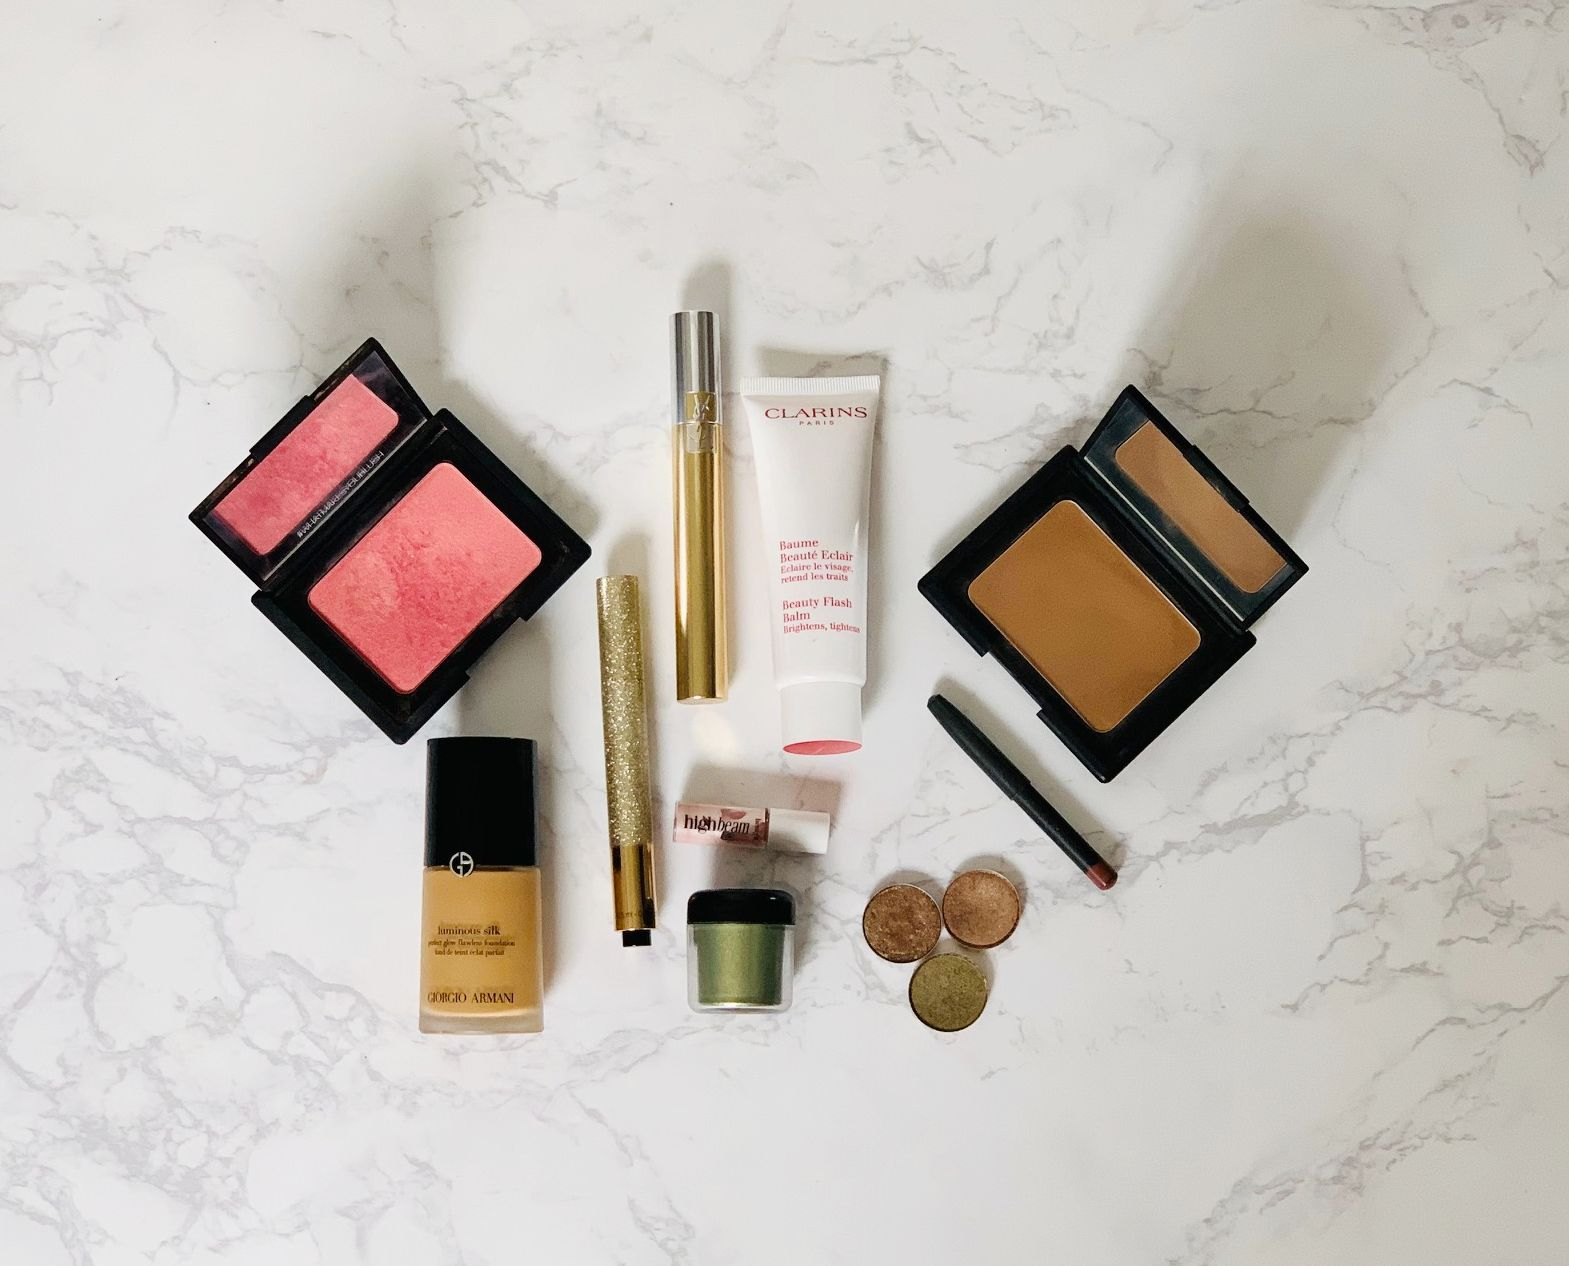 My makeup staples from 15 years ago - have they stood the test of time?